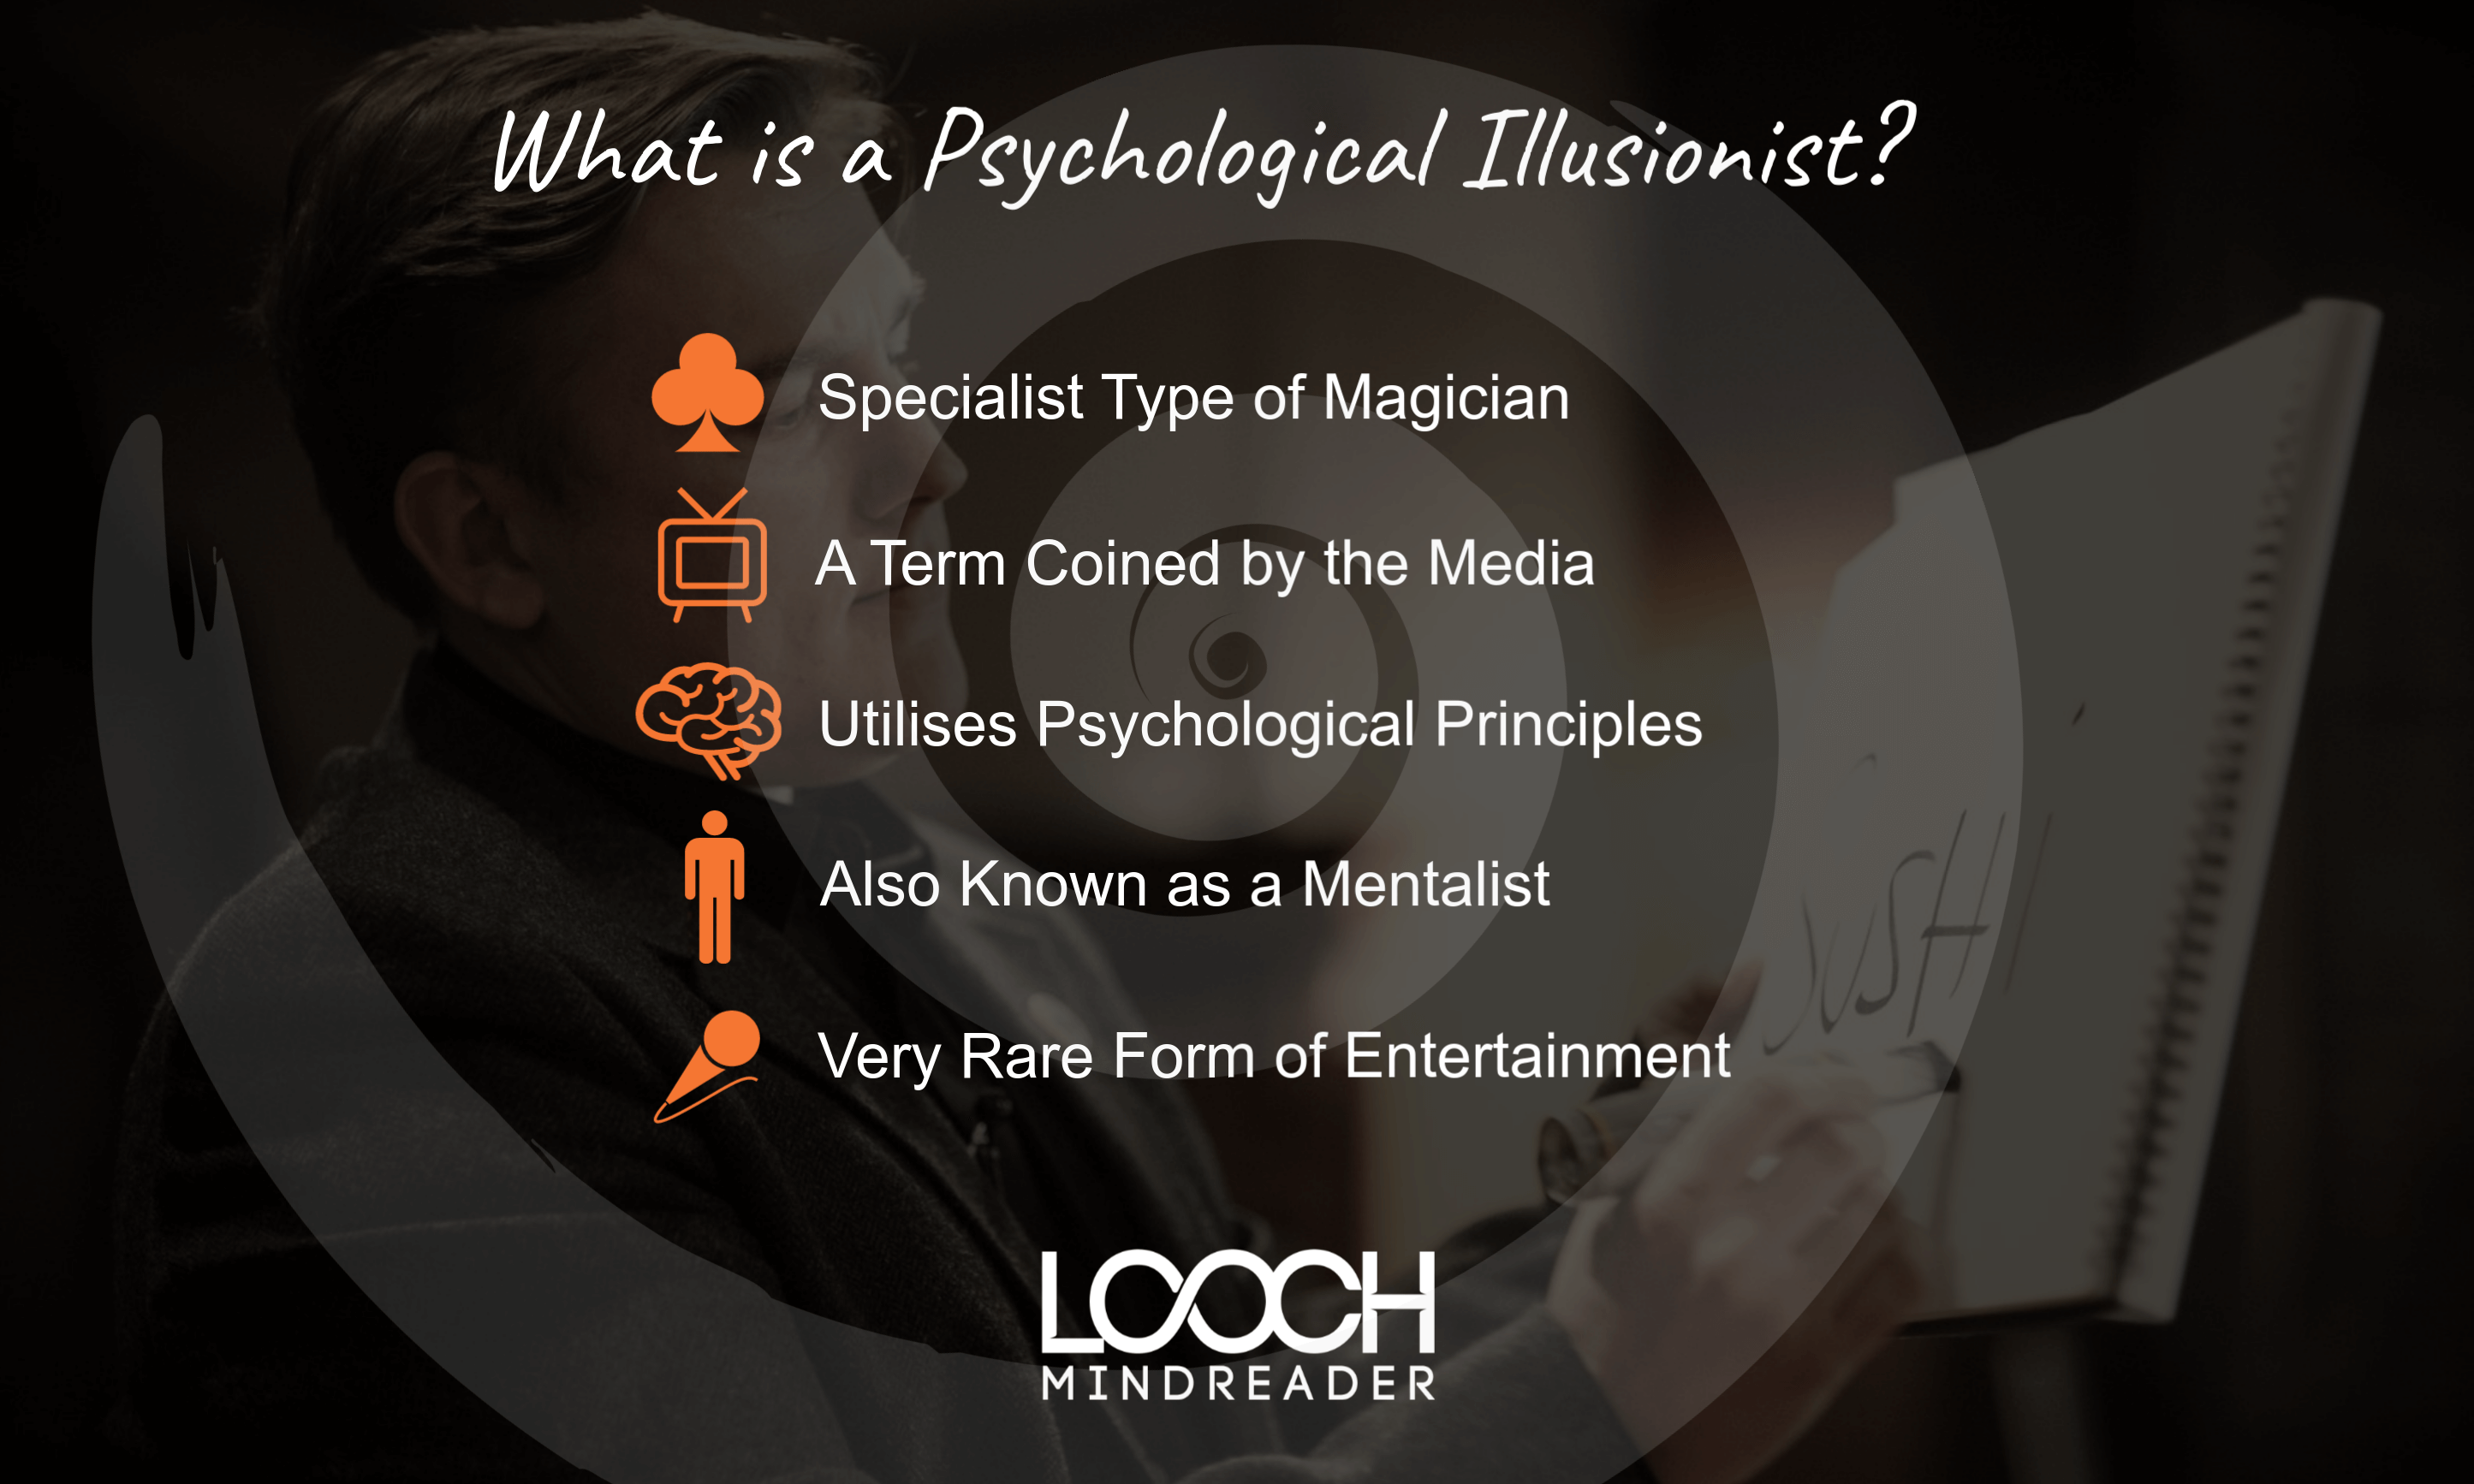 Infographic showing What is a Psychological Illusionist